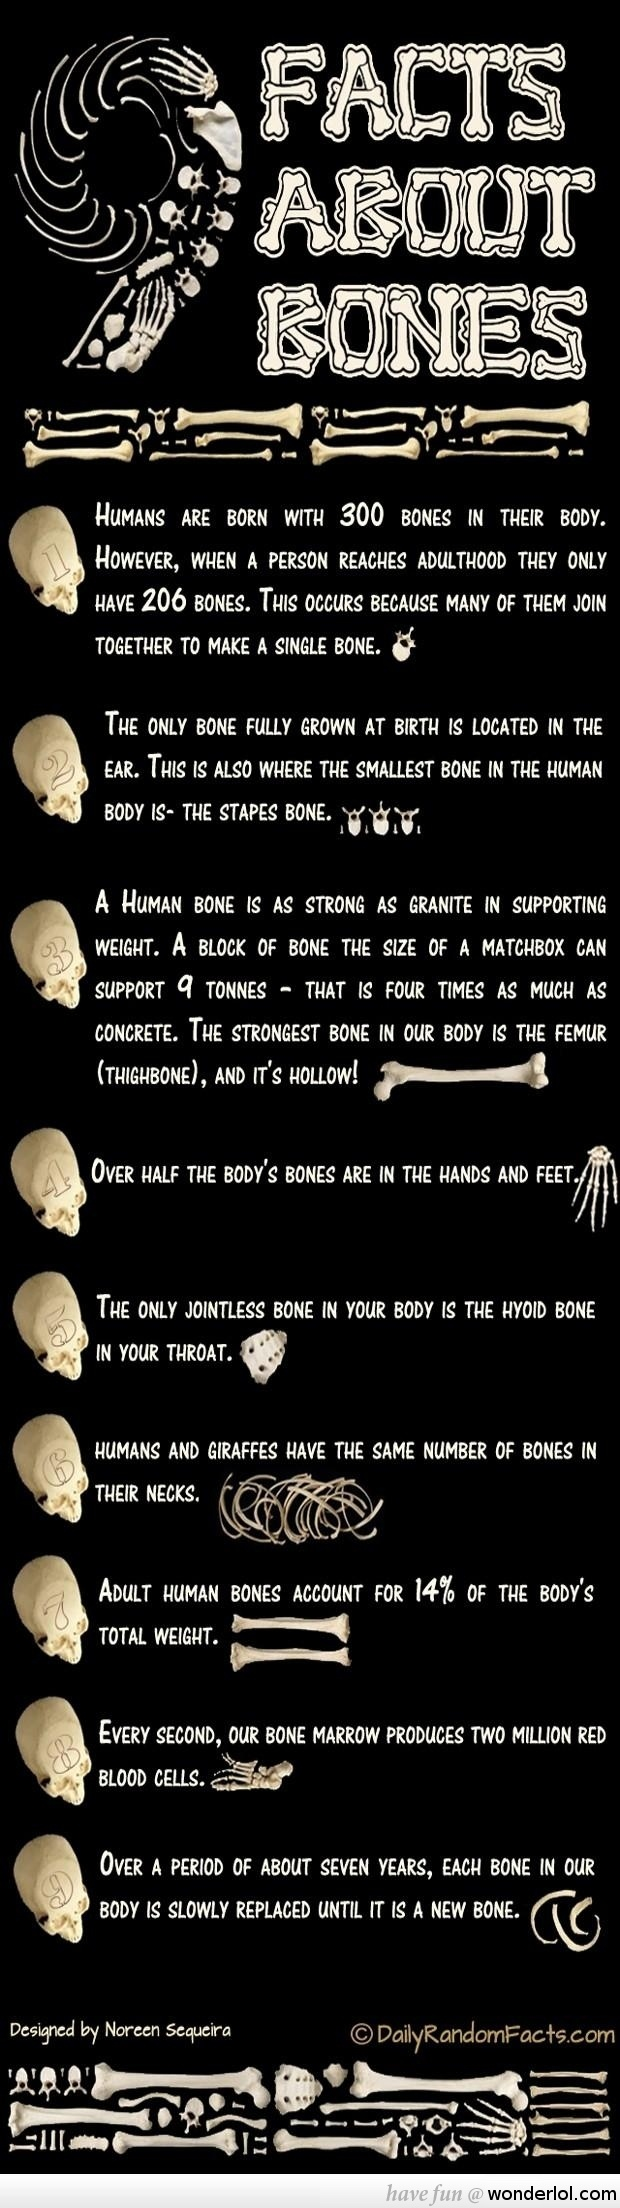 Some Interesting Facts About Human Bones That You Didn't Know